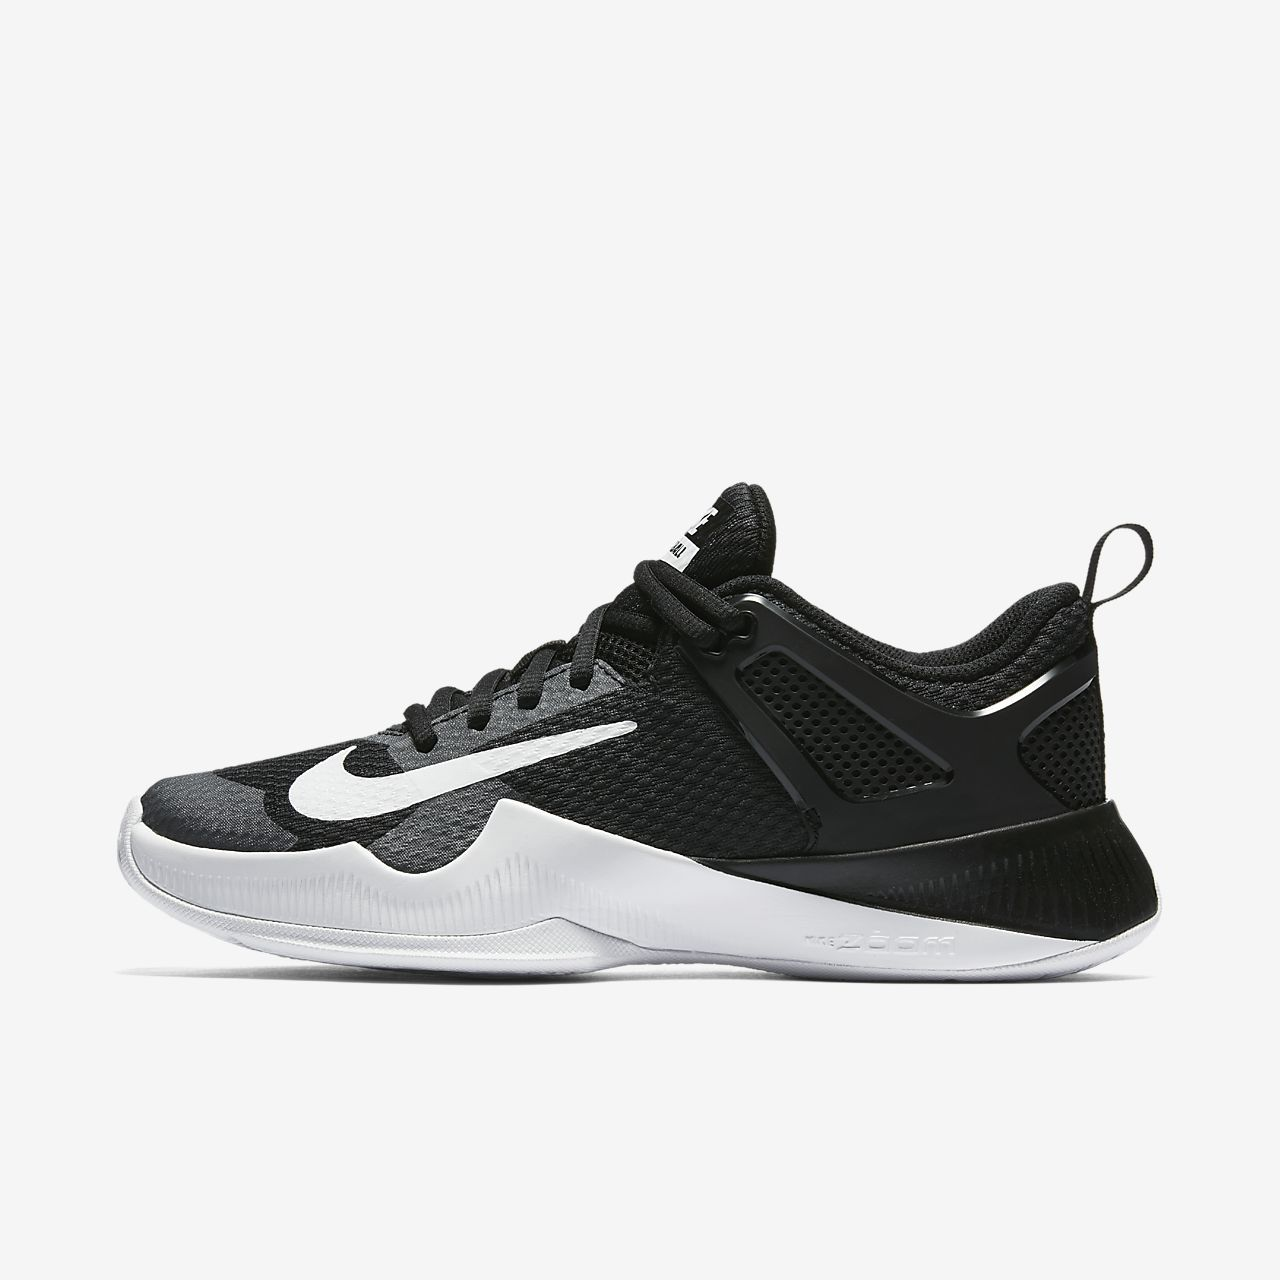 Nike Air Zoom Hyperace Women S Volleyball Shoe Adidas Zapatillas Mujer Zapatillas Mujer Zapatos